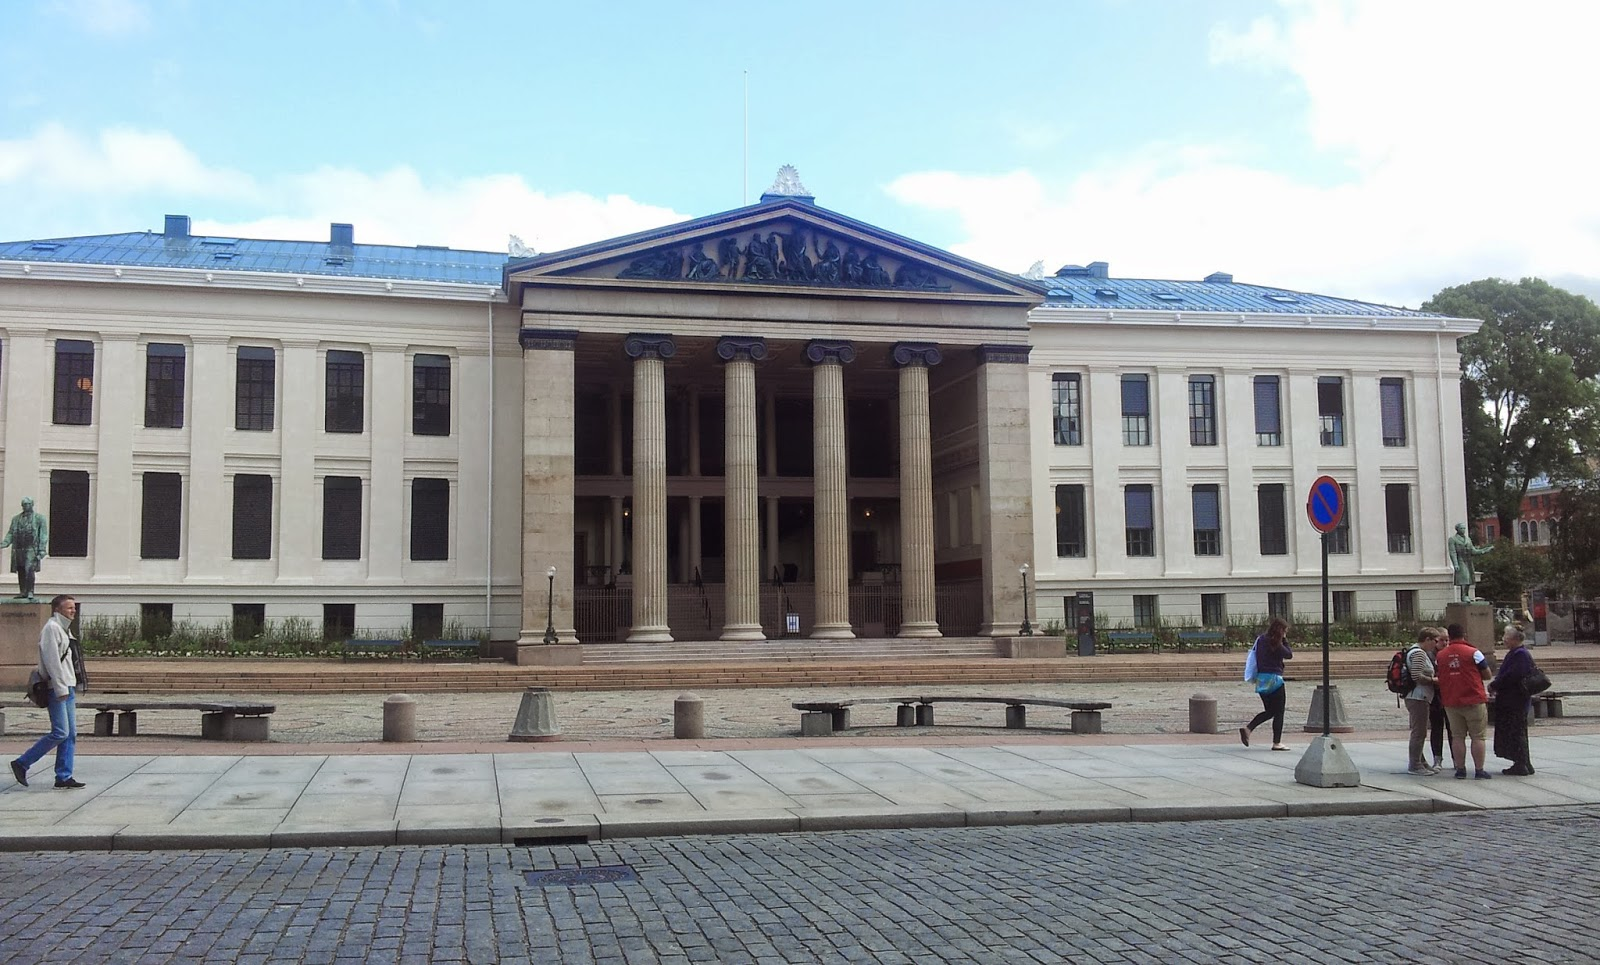 Universitatea din Oslo